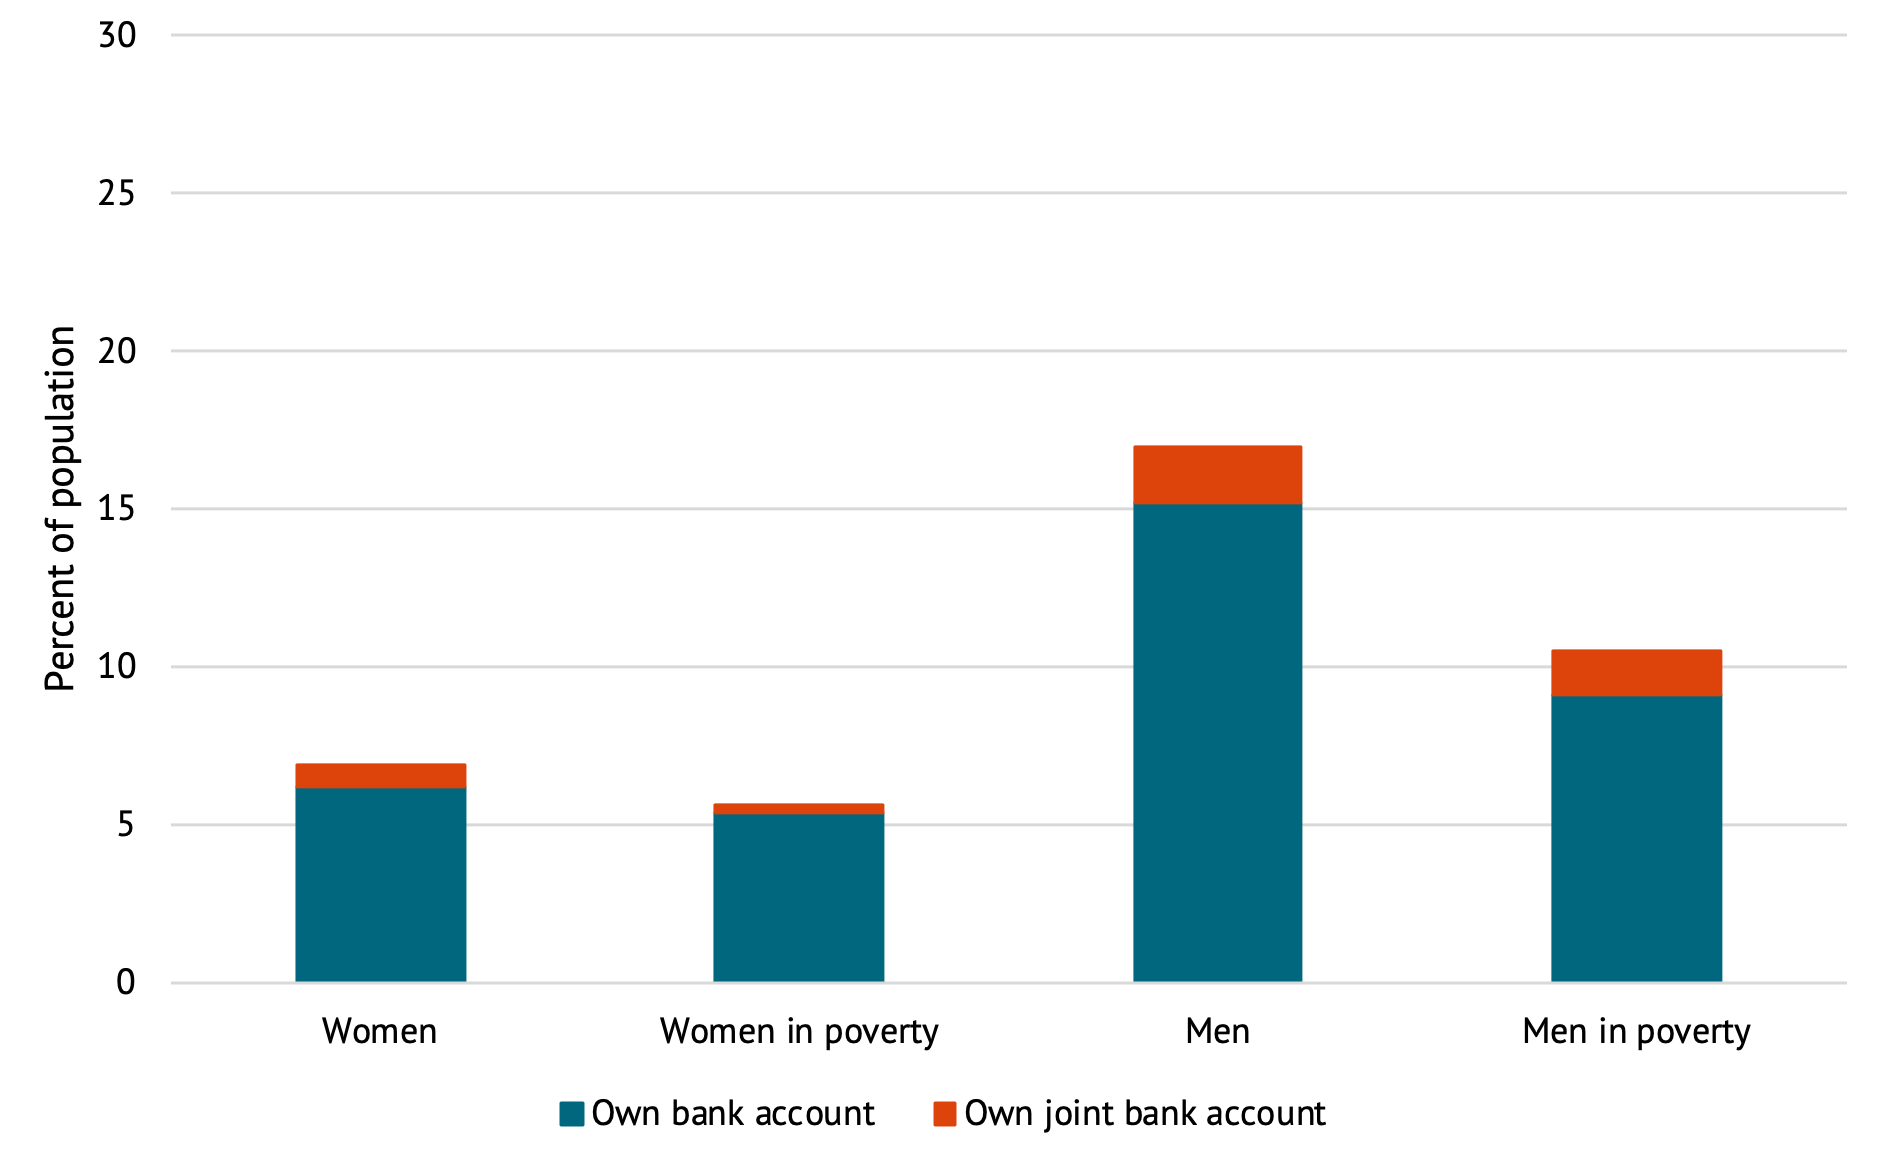 A figure showing the percent of women and men who have bank accounts